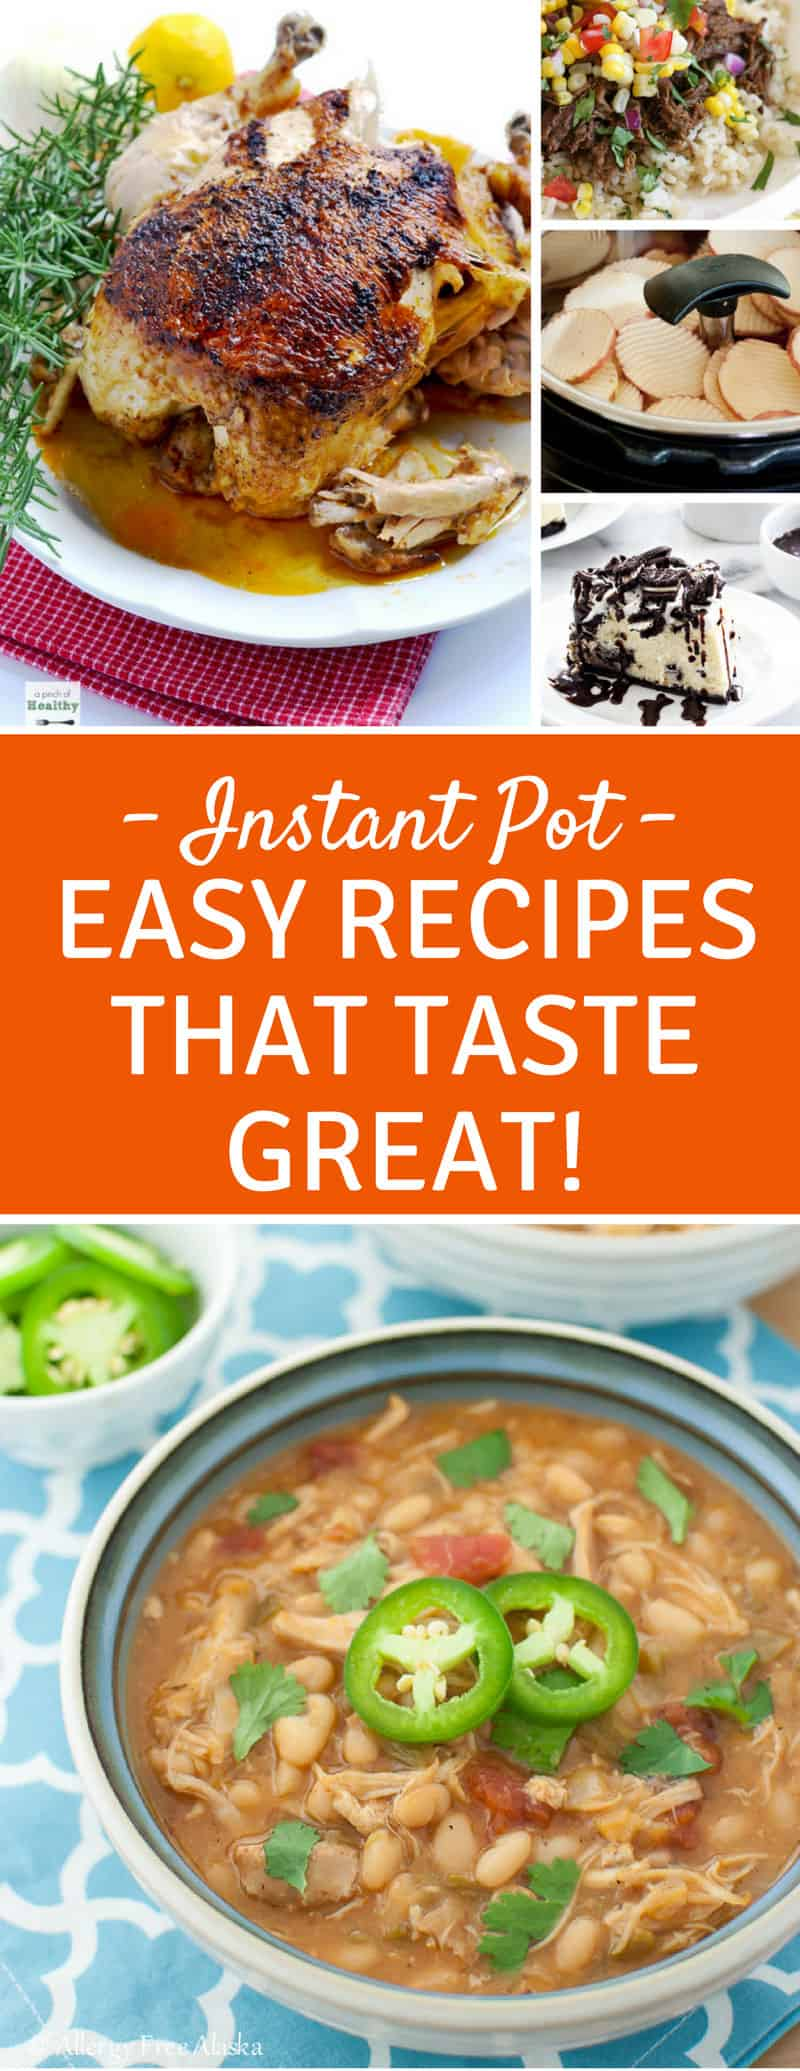 Simple Instant Pot Recipes - There are so many great recipes for you to add to your meal plan!